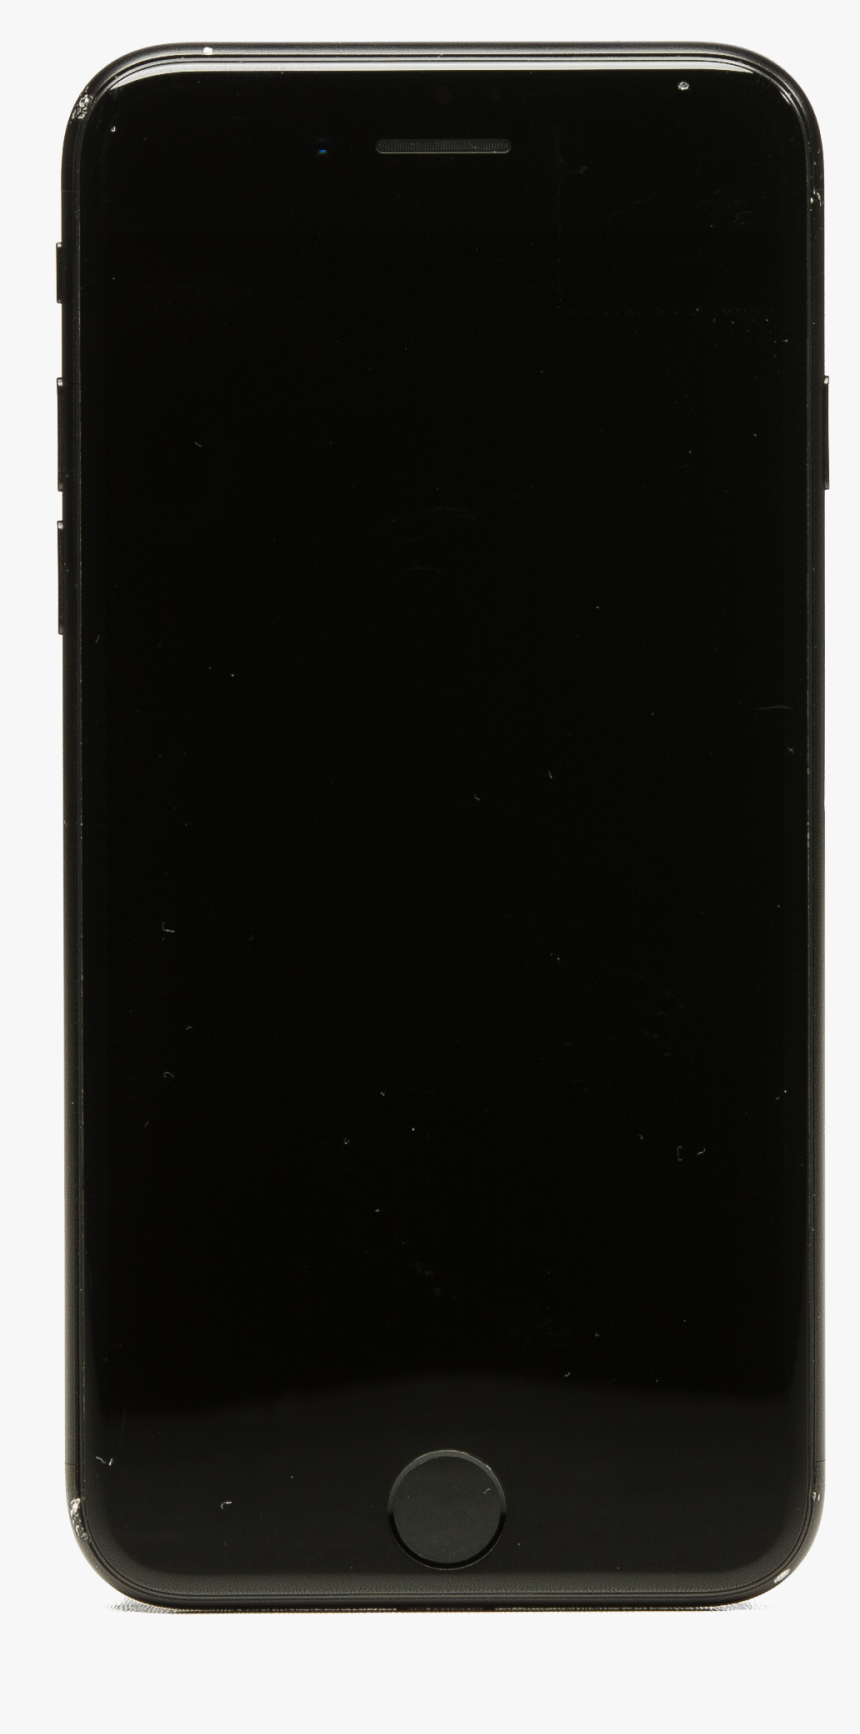 Iphone 7 Smart Battery Case, HD Png Download, Free Download